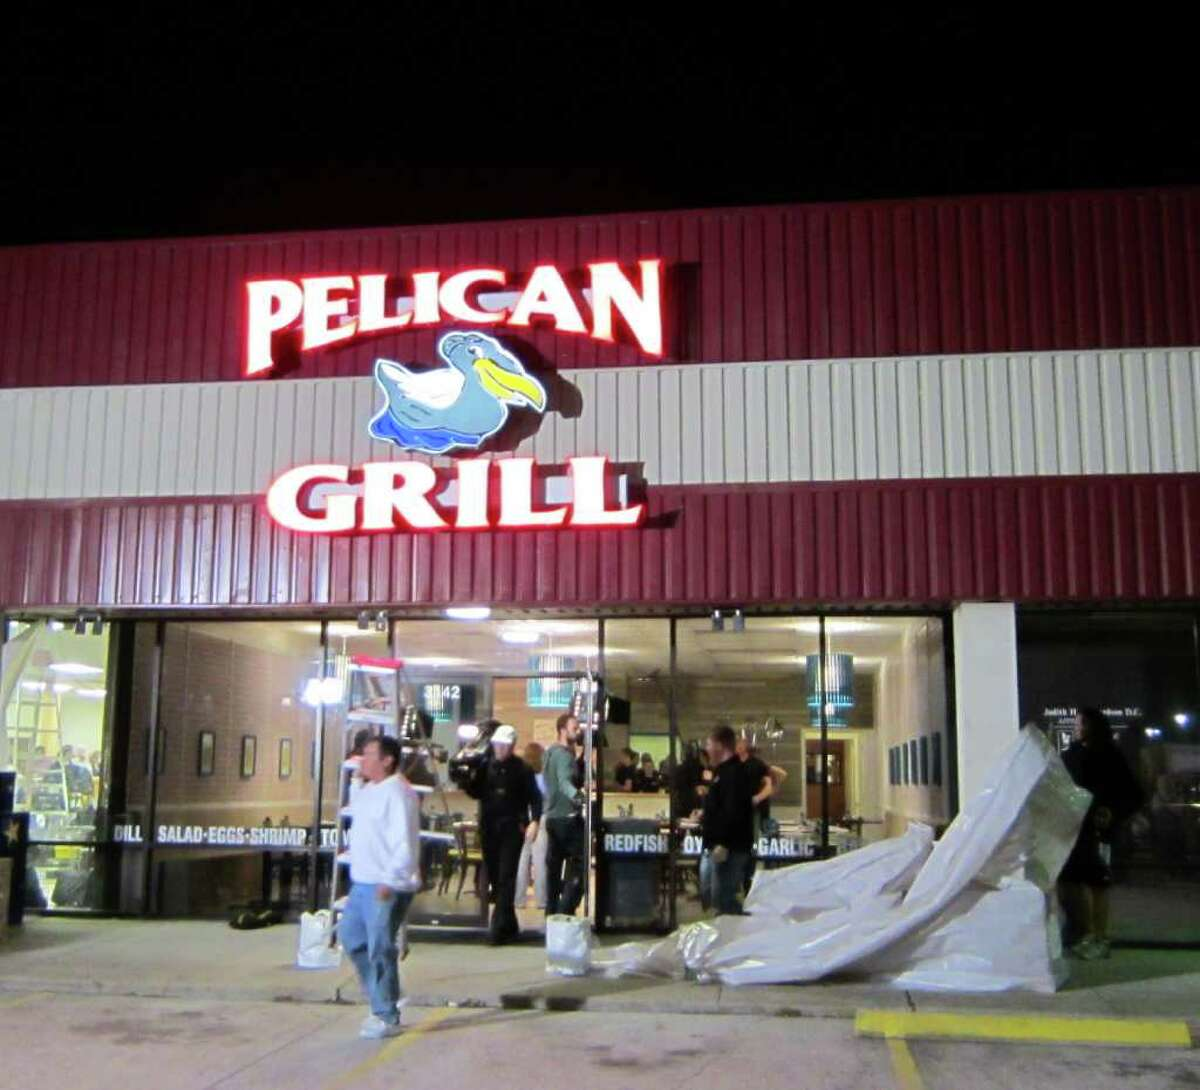 The Food Network's Restaurant Impossible remade the Pelican Grill in Seabrook for an upcoming episode of the reality show. The grand reopening was Jan. 11, 2012. A camera crew films diners. Crew remove the tarps that covered the restaurant for two days.